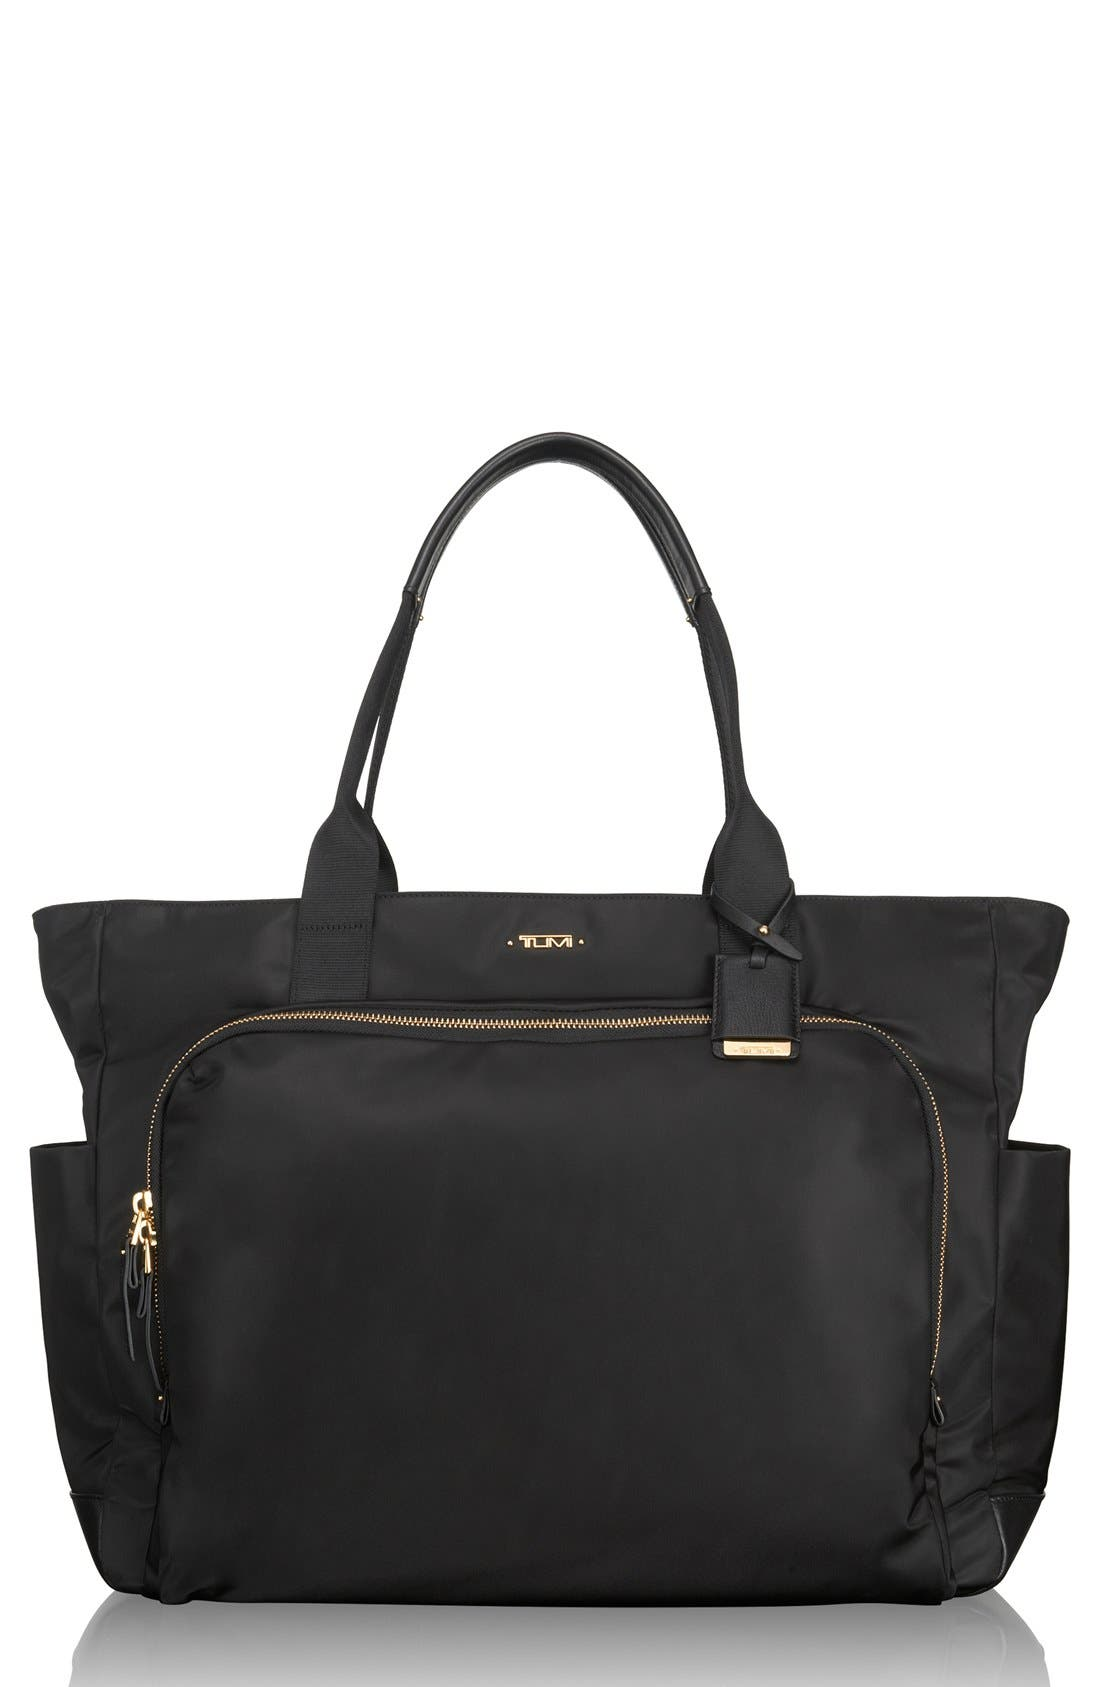 Main Image - Tumi 'Mansion' Shoulder Tote/Baby Bag